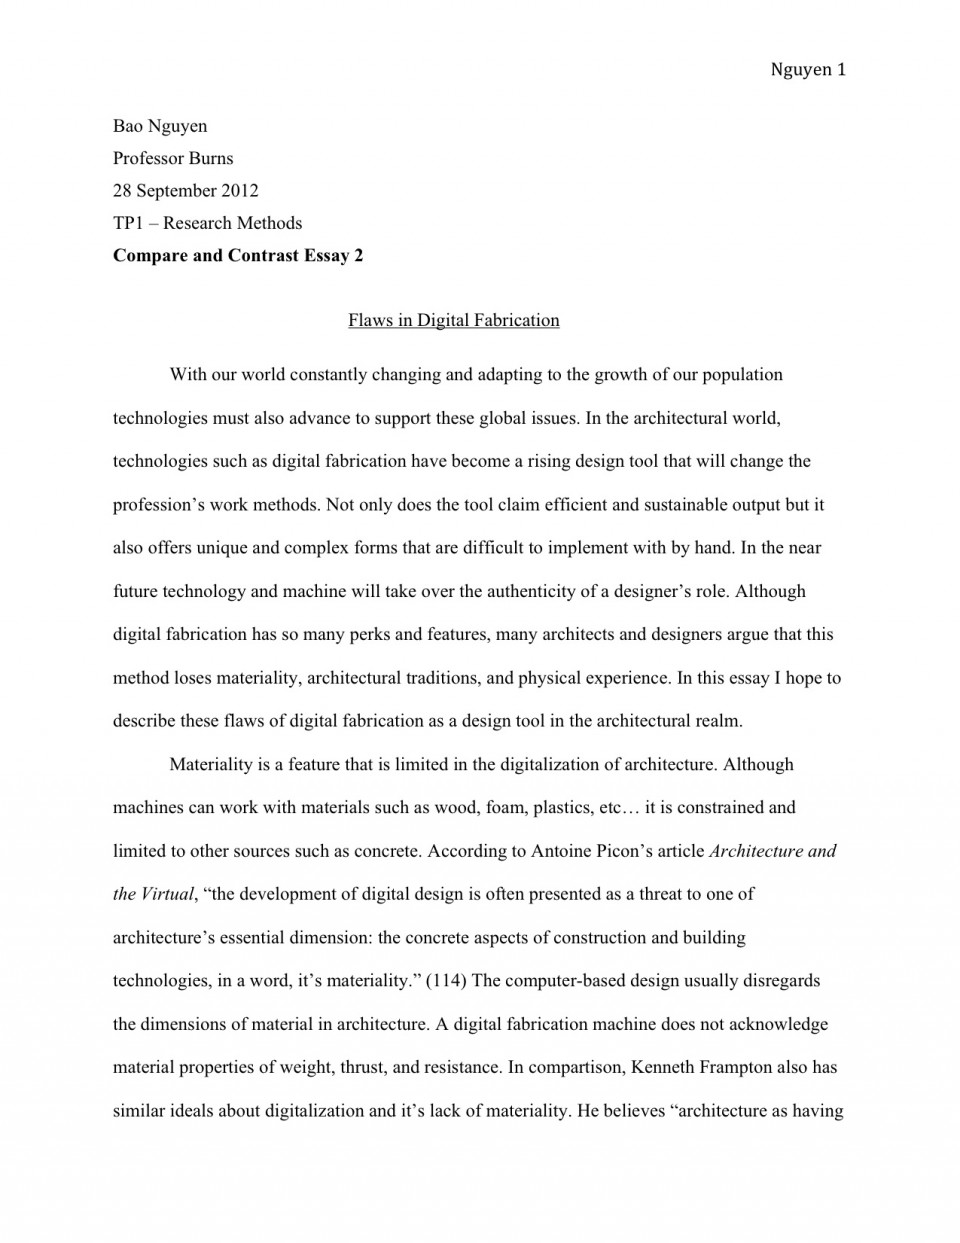 005 How To Write An Essay Example Tp1 3 Shocking About Myself For A Scholarship Excellent Conclusion Pdf 960